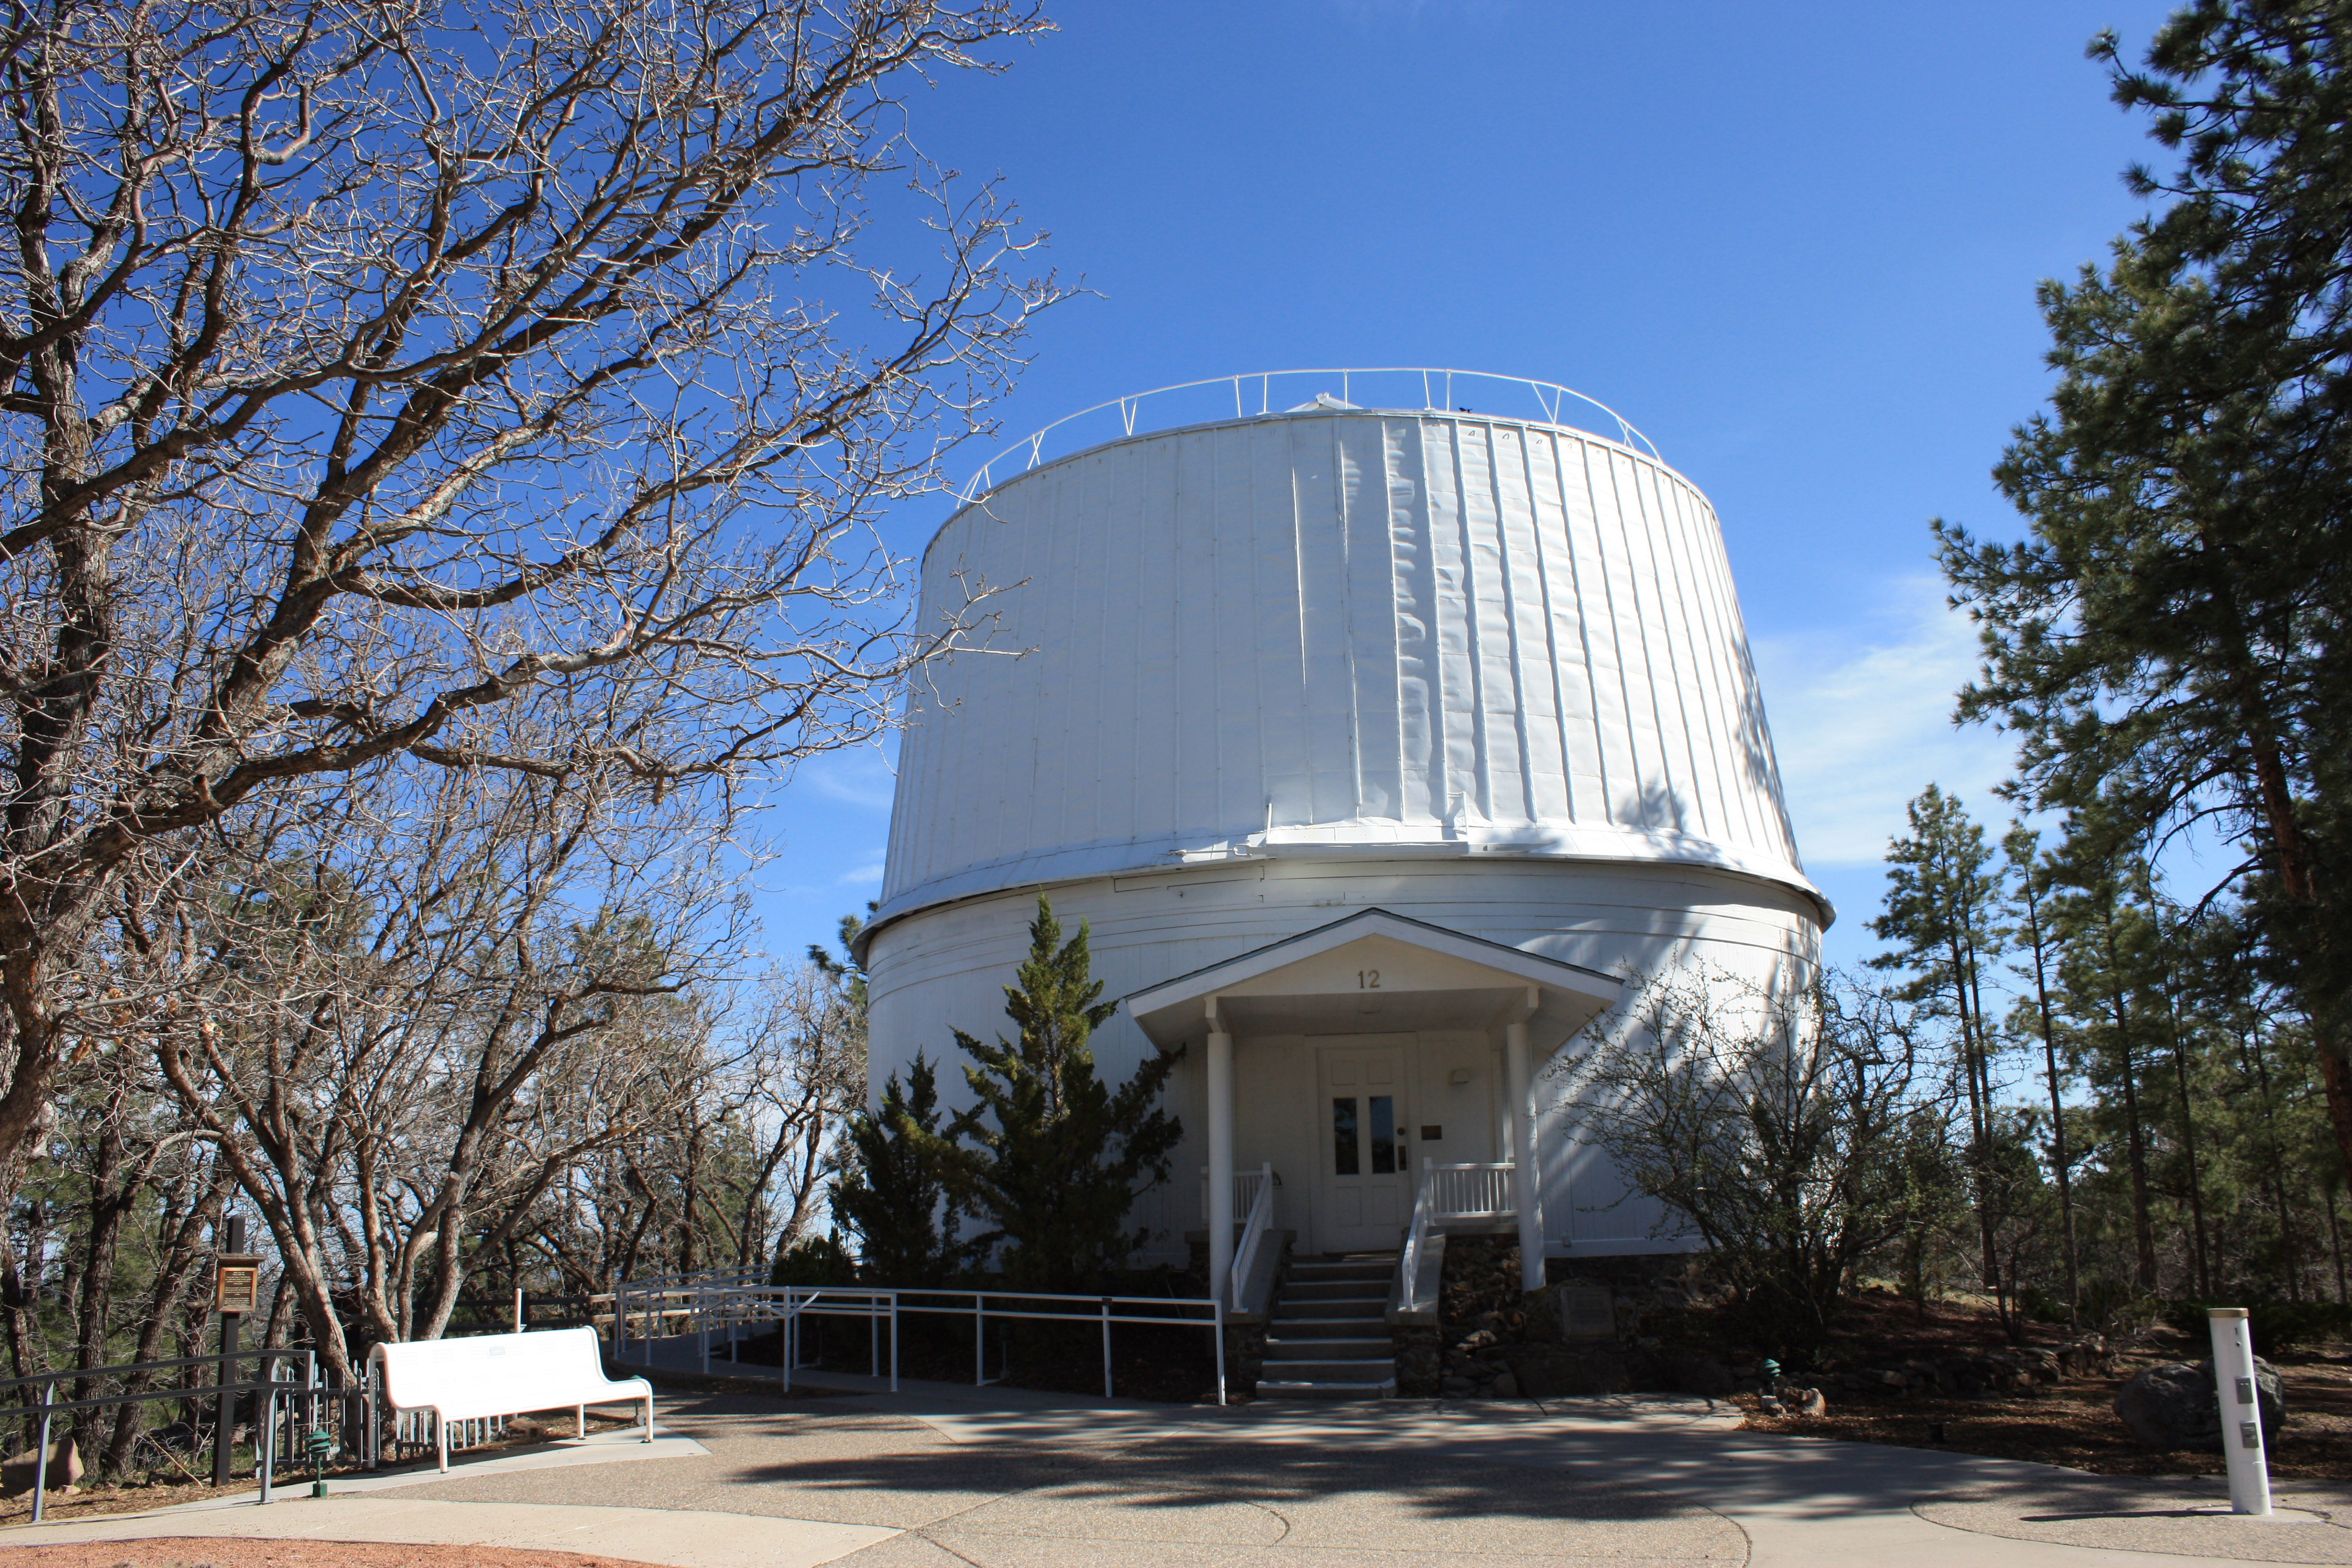 Lowell Observatory, lieu de la découverte de Pluton, by Kaldari (Own work) [Public domain], via Wikimedia Commons